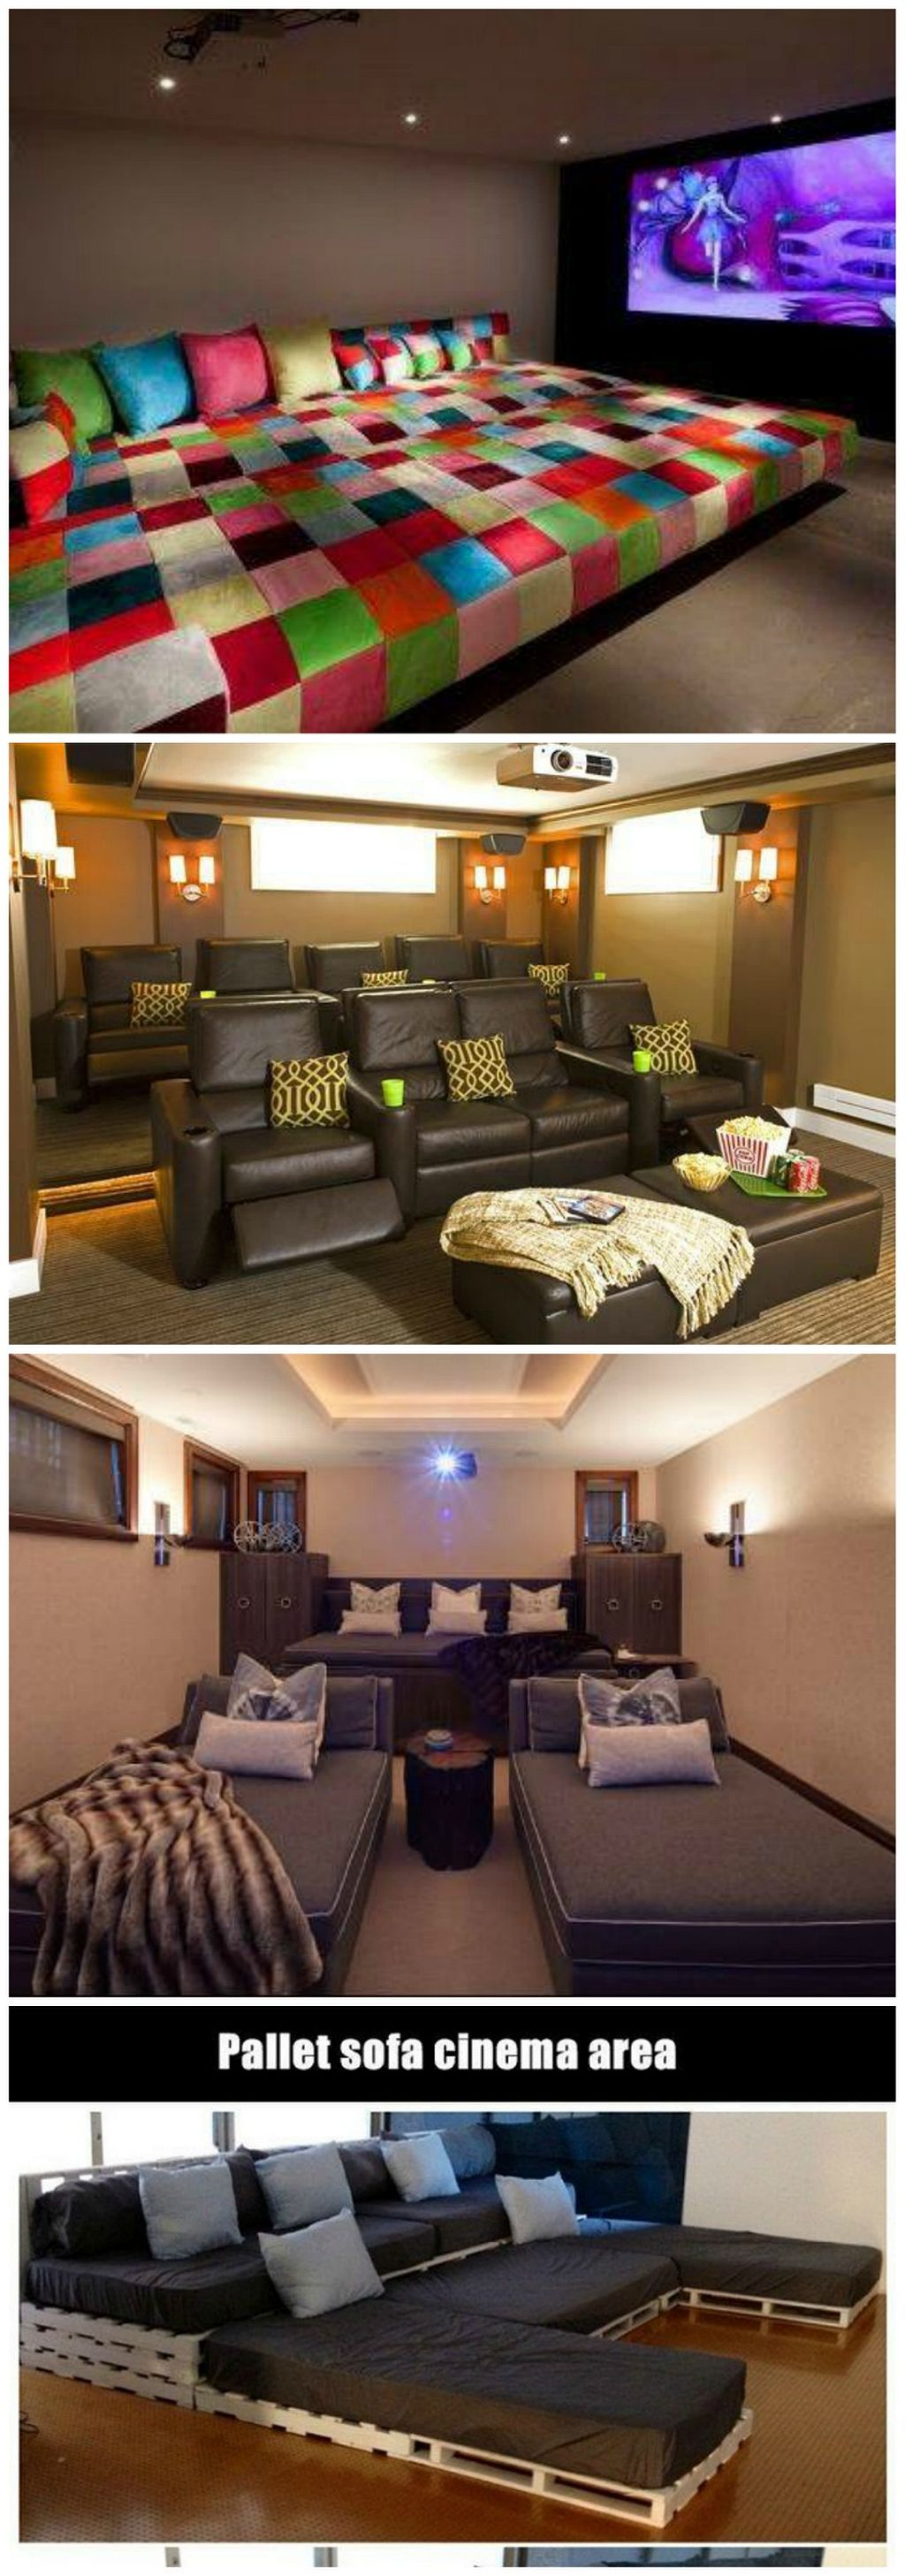 Stunning 33 Awesome Pallet Home Theater Design Ideas Https Kidmagz Com 33 Awesome Pallet Home At Home Movie Theater Home Theater Seating Home Theater Design